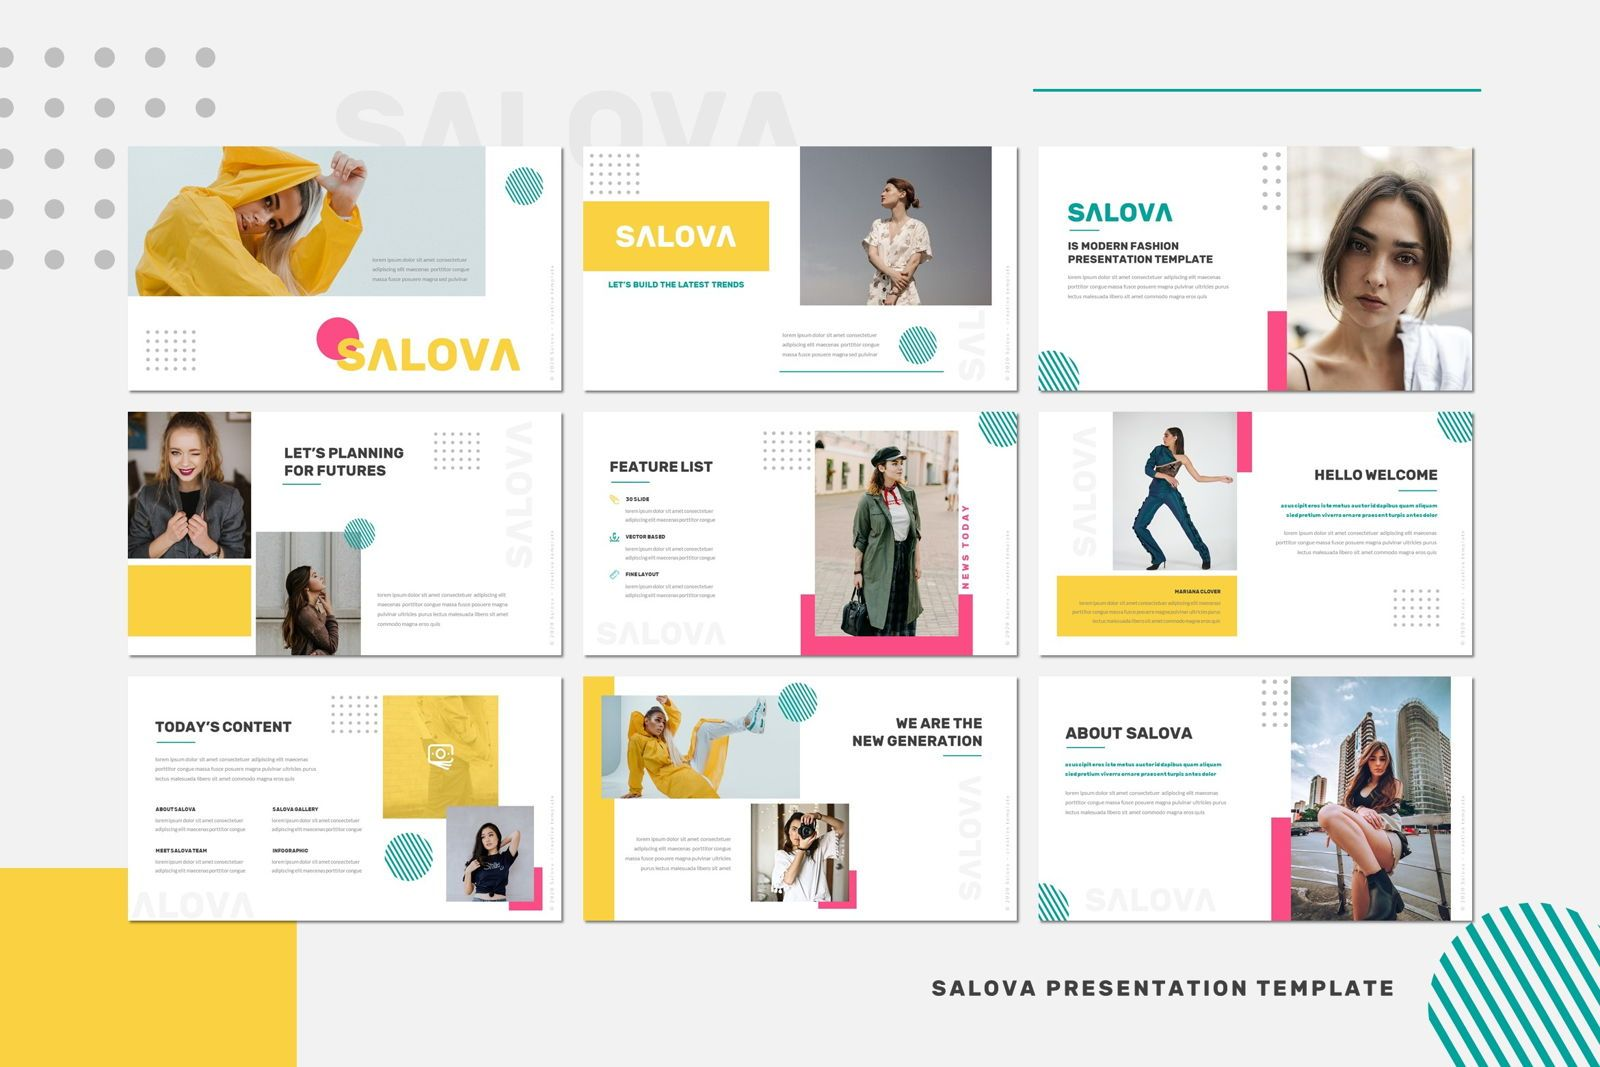 Salova - Powerpoint Template, Slide 2, 07995, Presentation Templates — PoweredTemplate.com